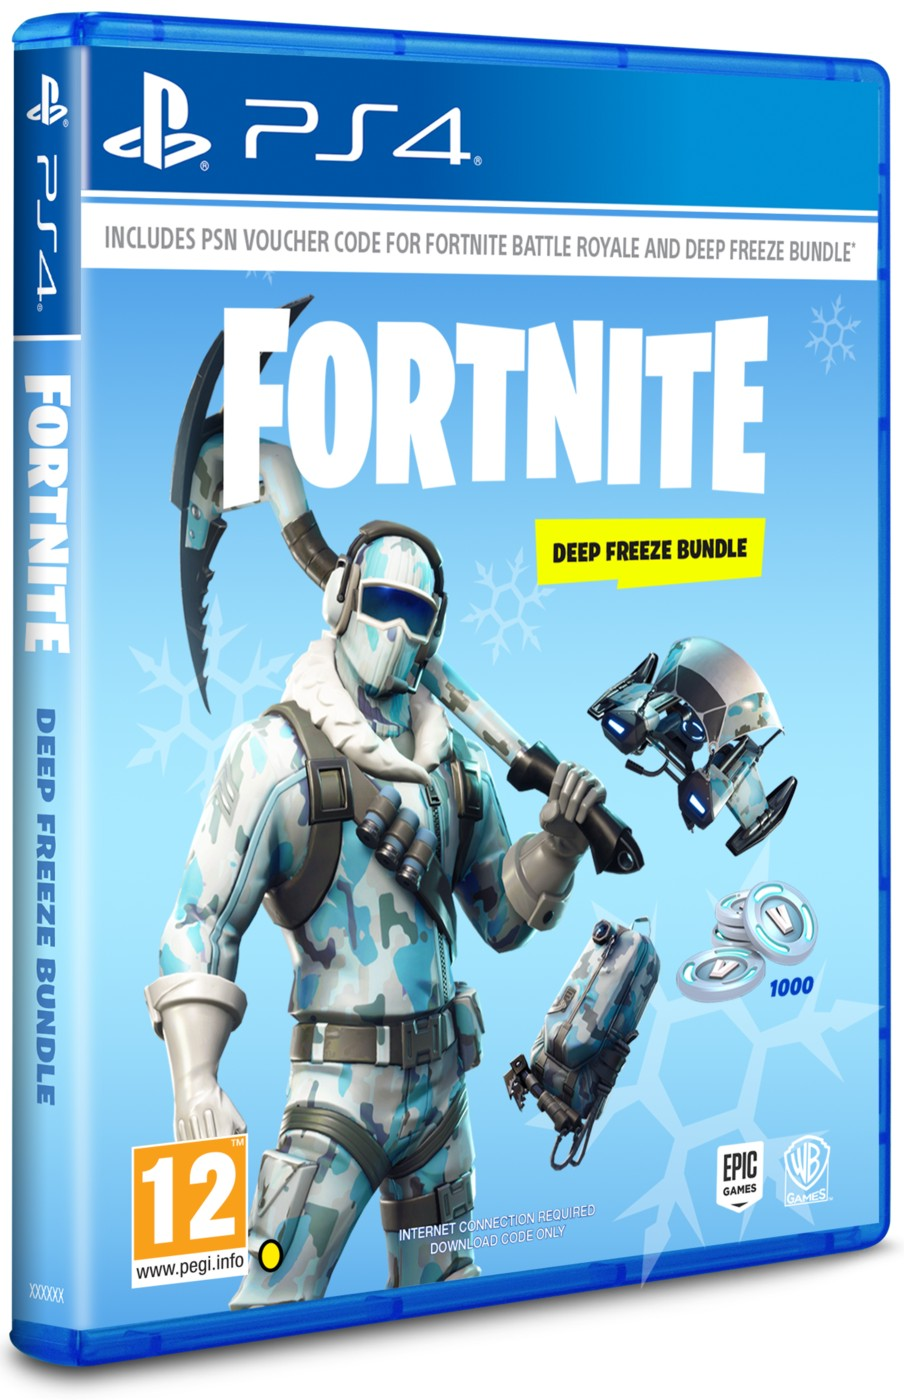 FORTNITE: DEEP FREEZE BUNDLE - PS4